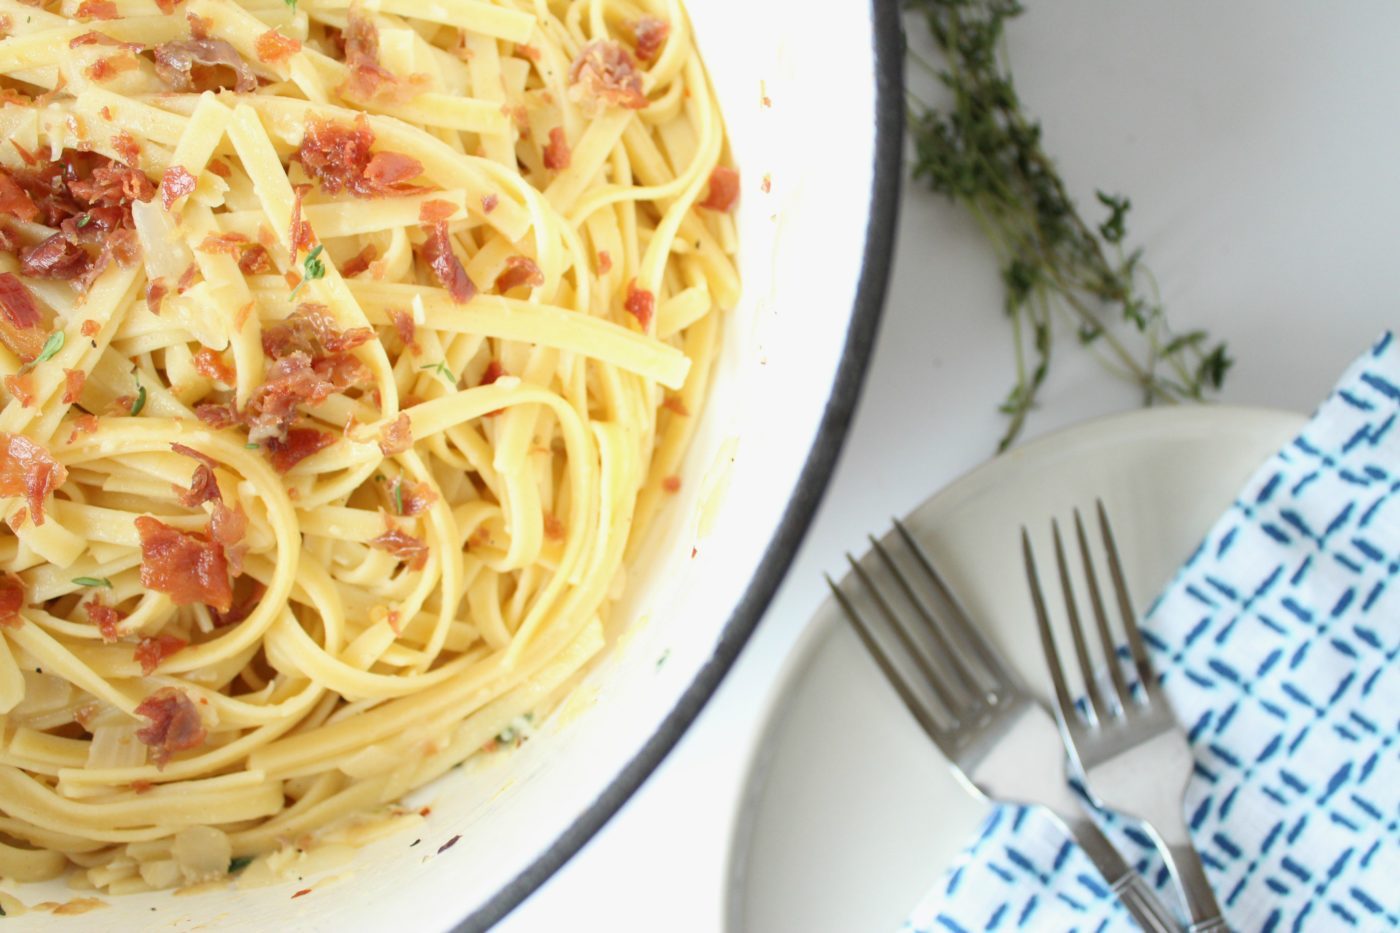 The perfect pasta, topped with crispy proscuitto.